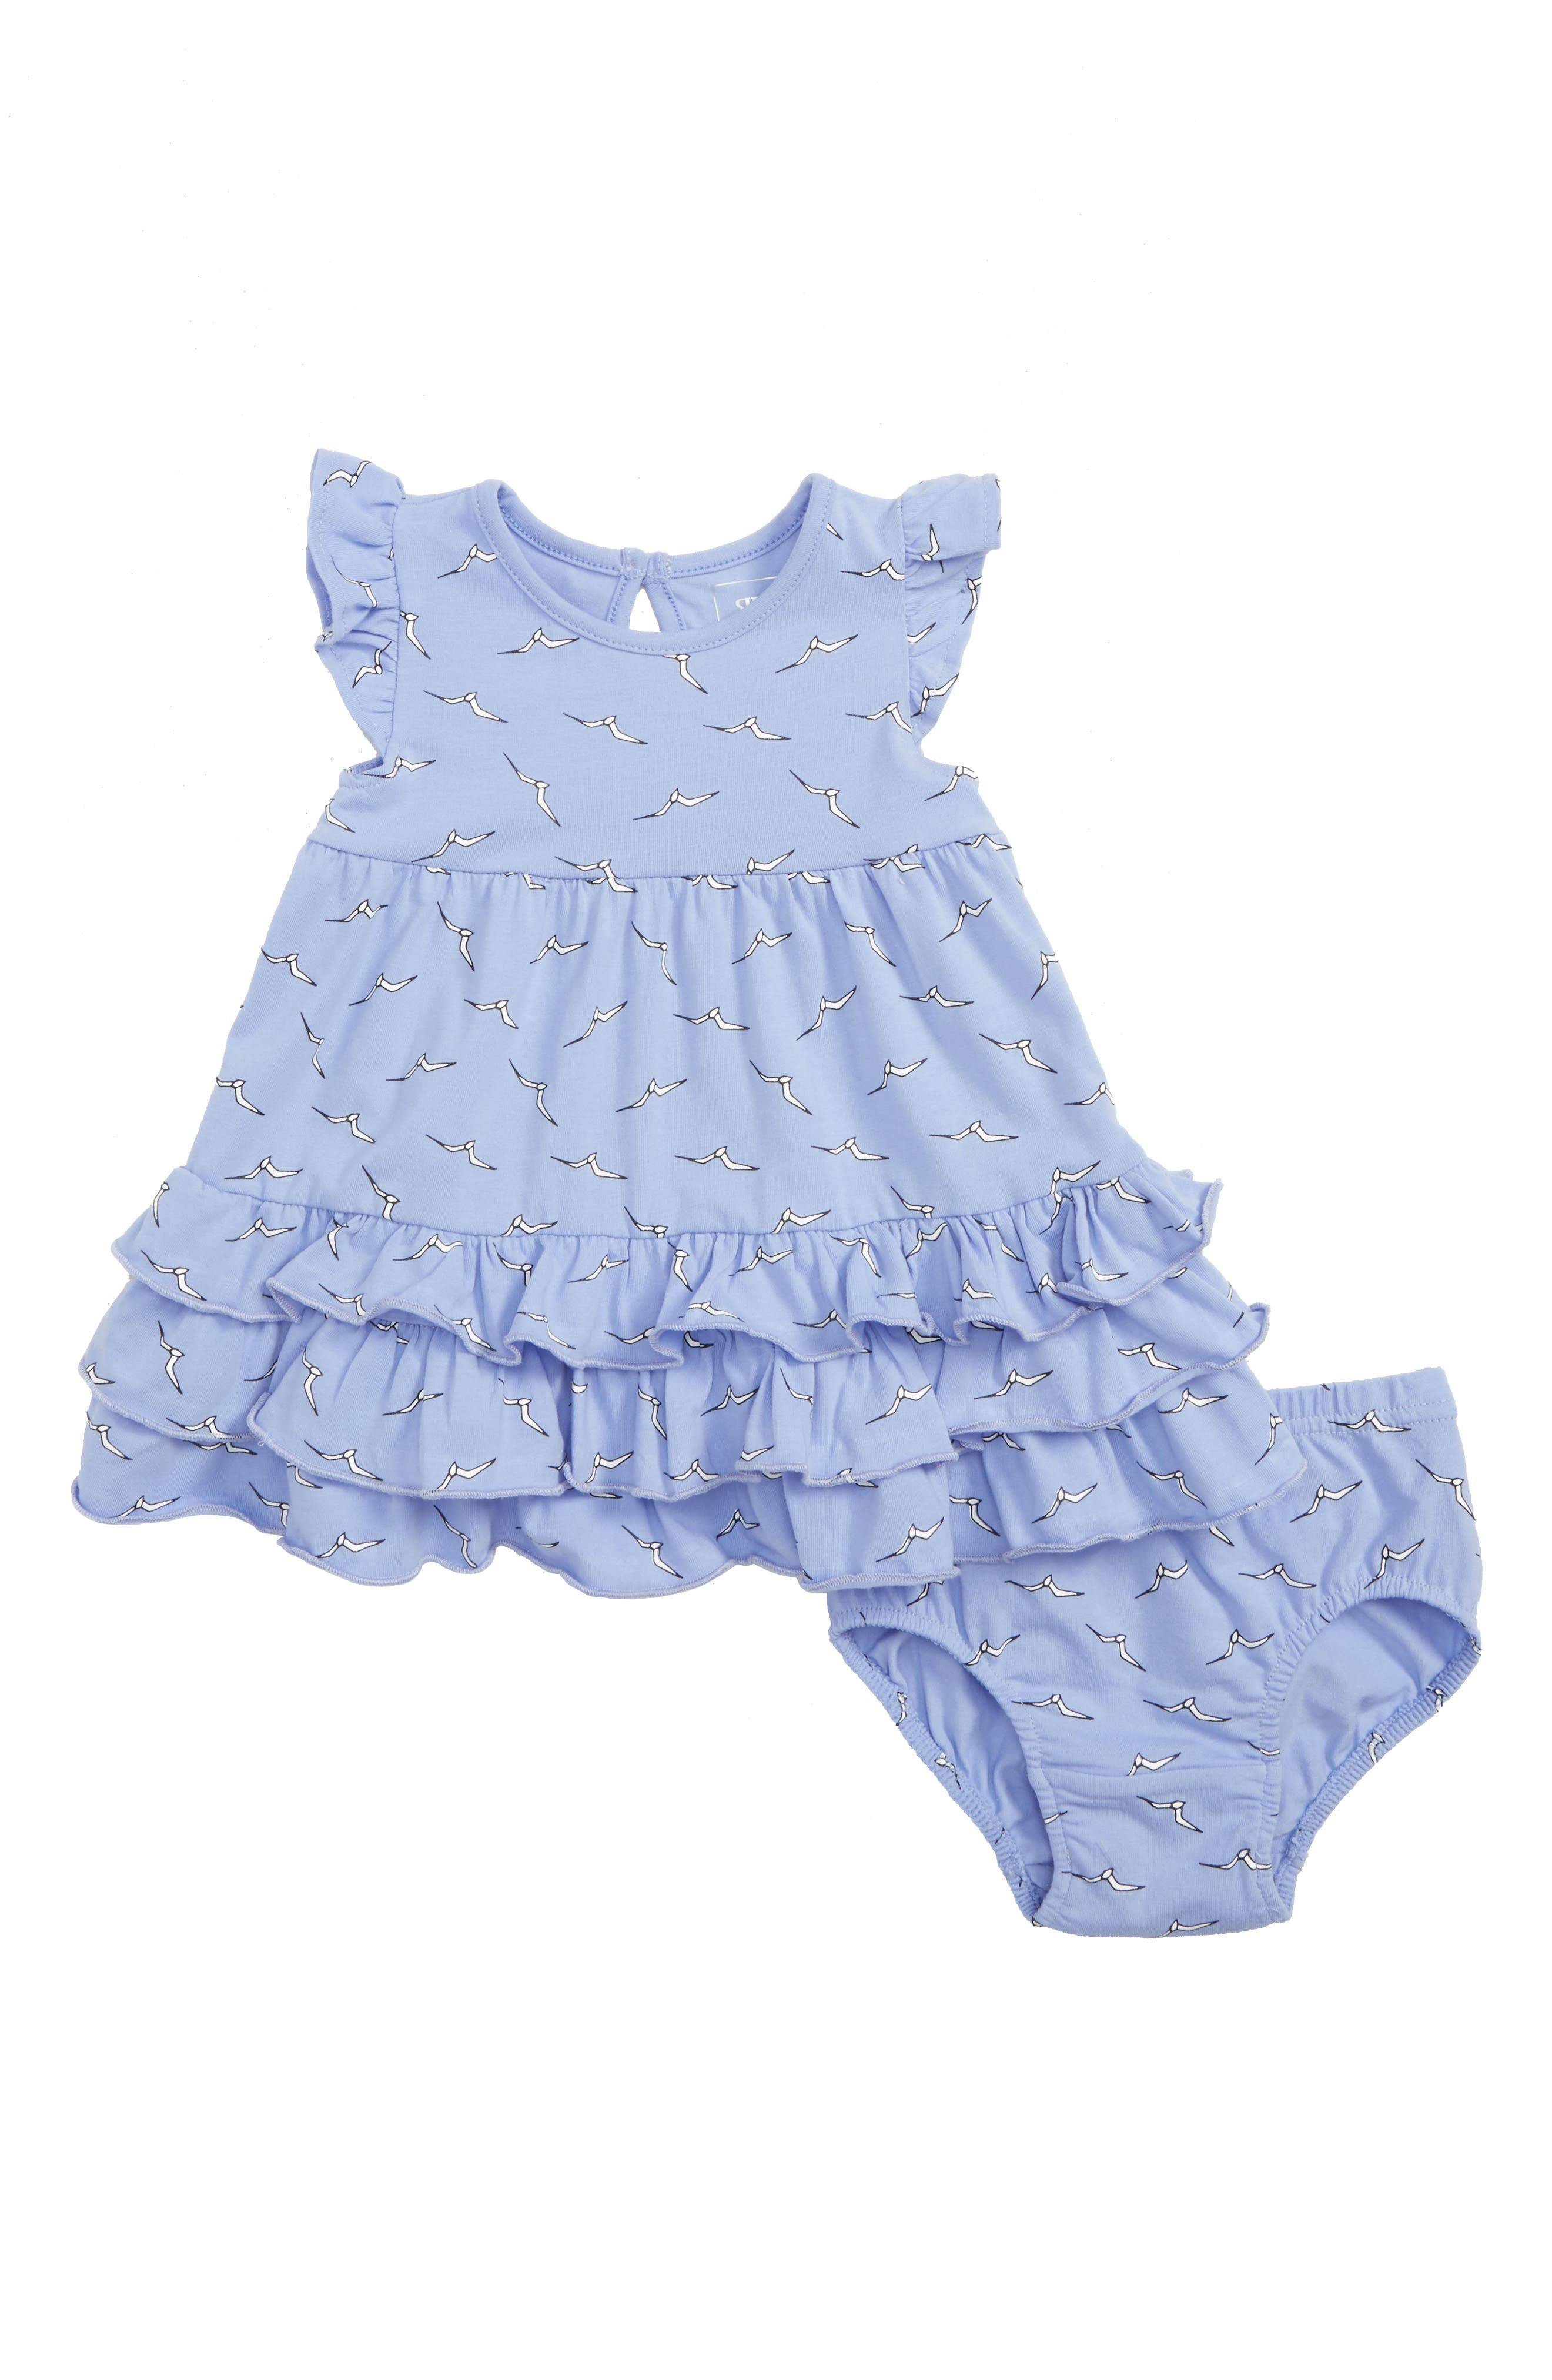 Alternate Image 1 Selected - Rosie Pope Seagulls Ruffle Dress (Baby Girls)